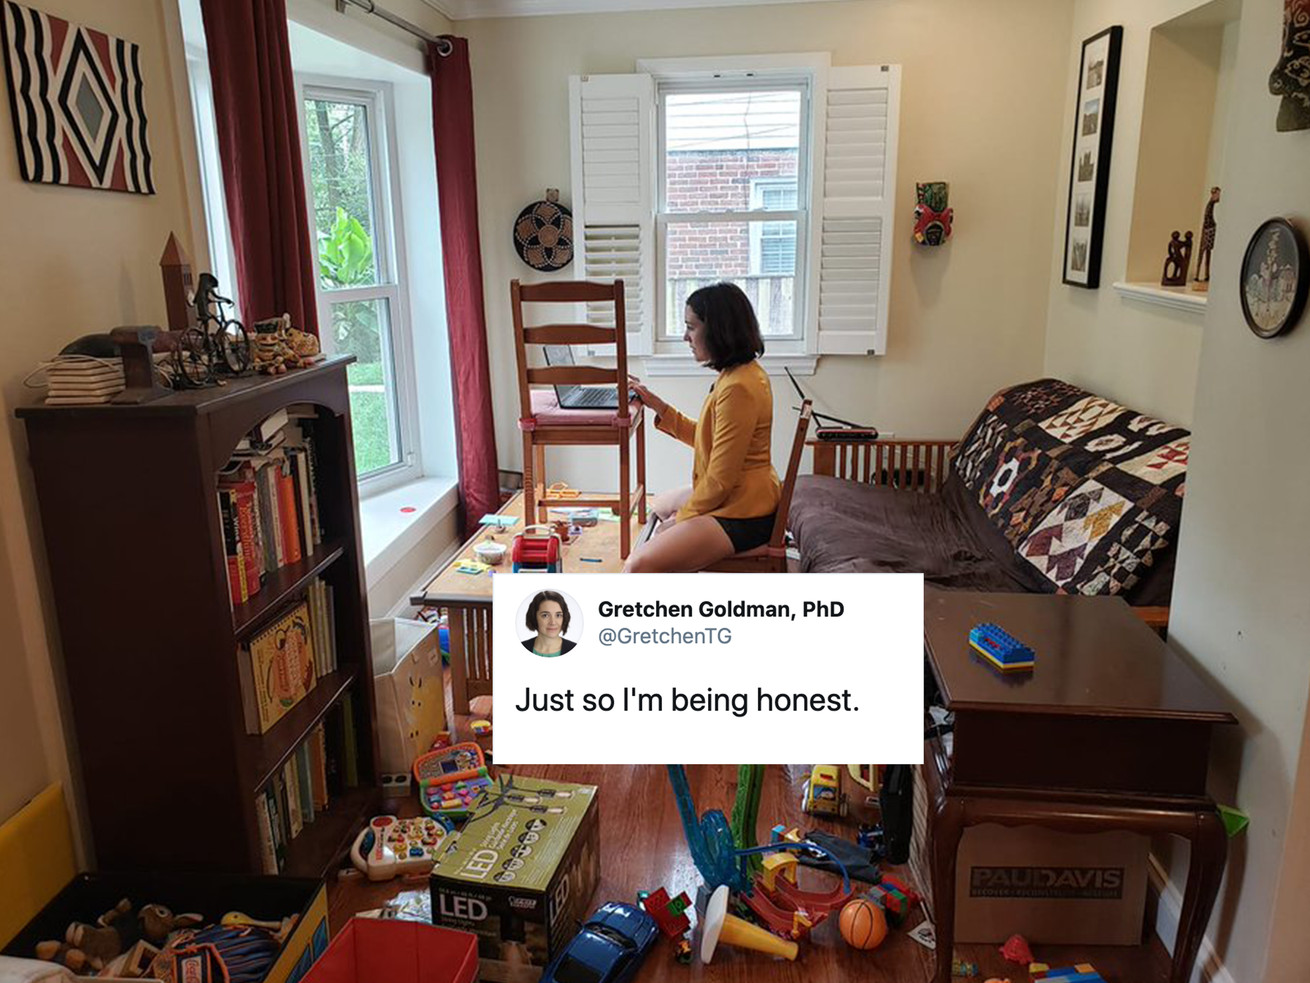 This Scientist Showed What Working From Home During The Pandemic REALLY Looks Like